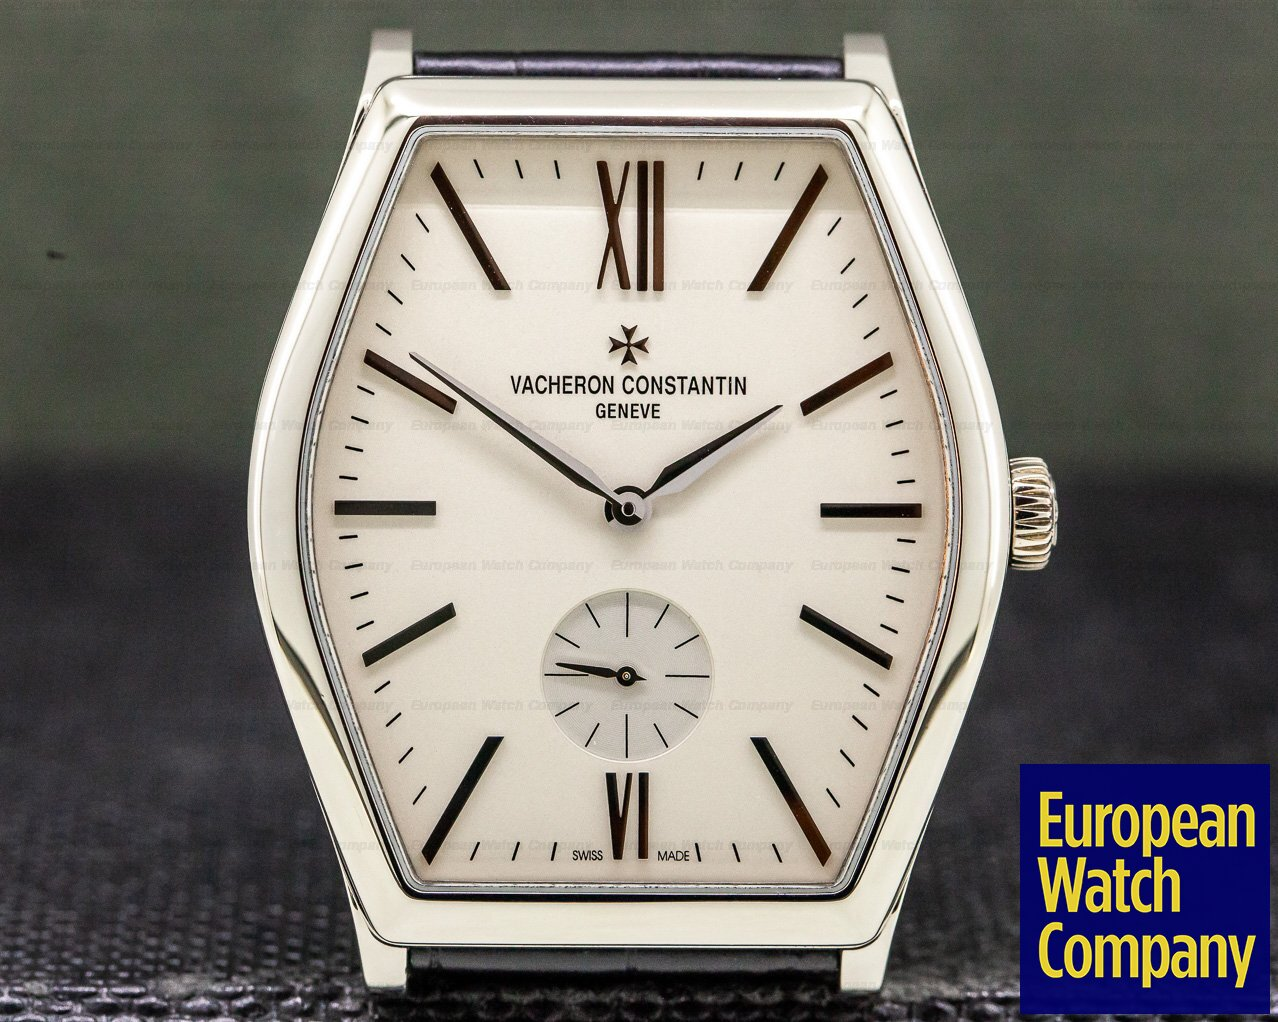 Vacheron Constantin 82230/000g-9962 Malte Small Seconds Manual Silver Dial 18K White Gold